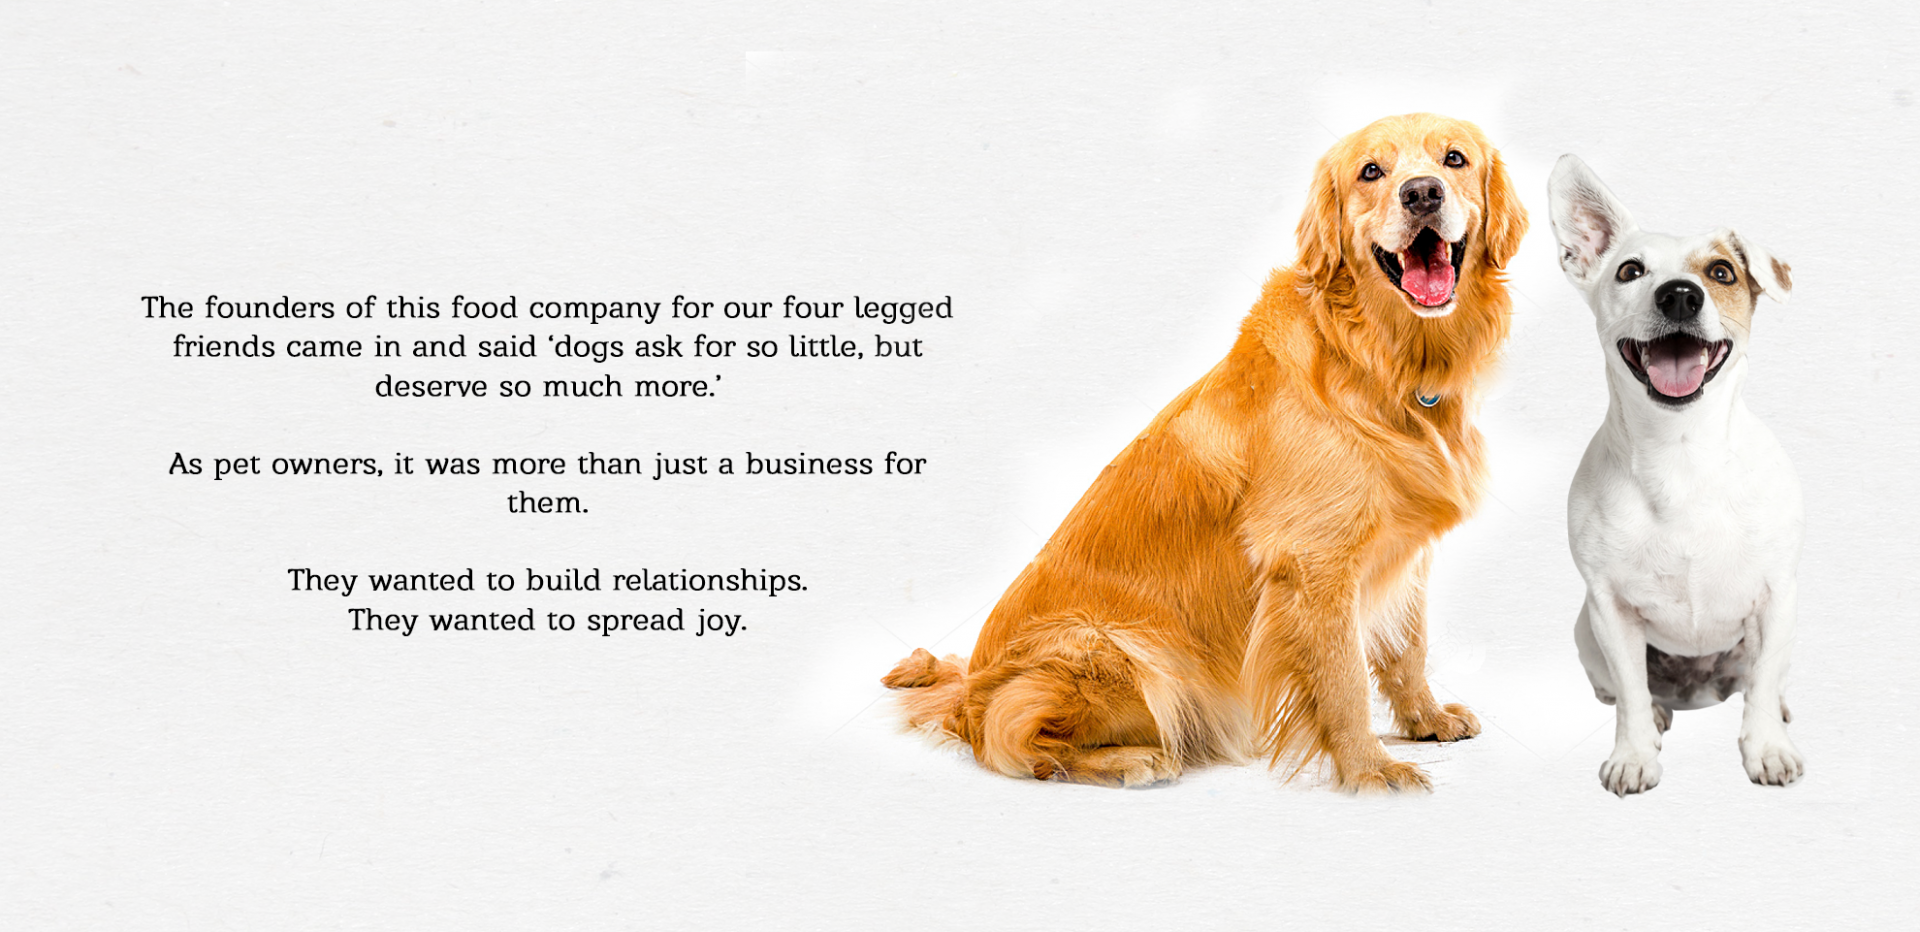 Verve_Concepts_Pet_Food_Branding_Project(www.verveconcepts.com)